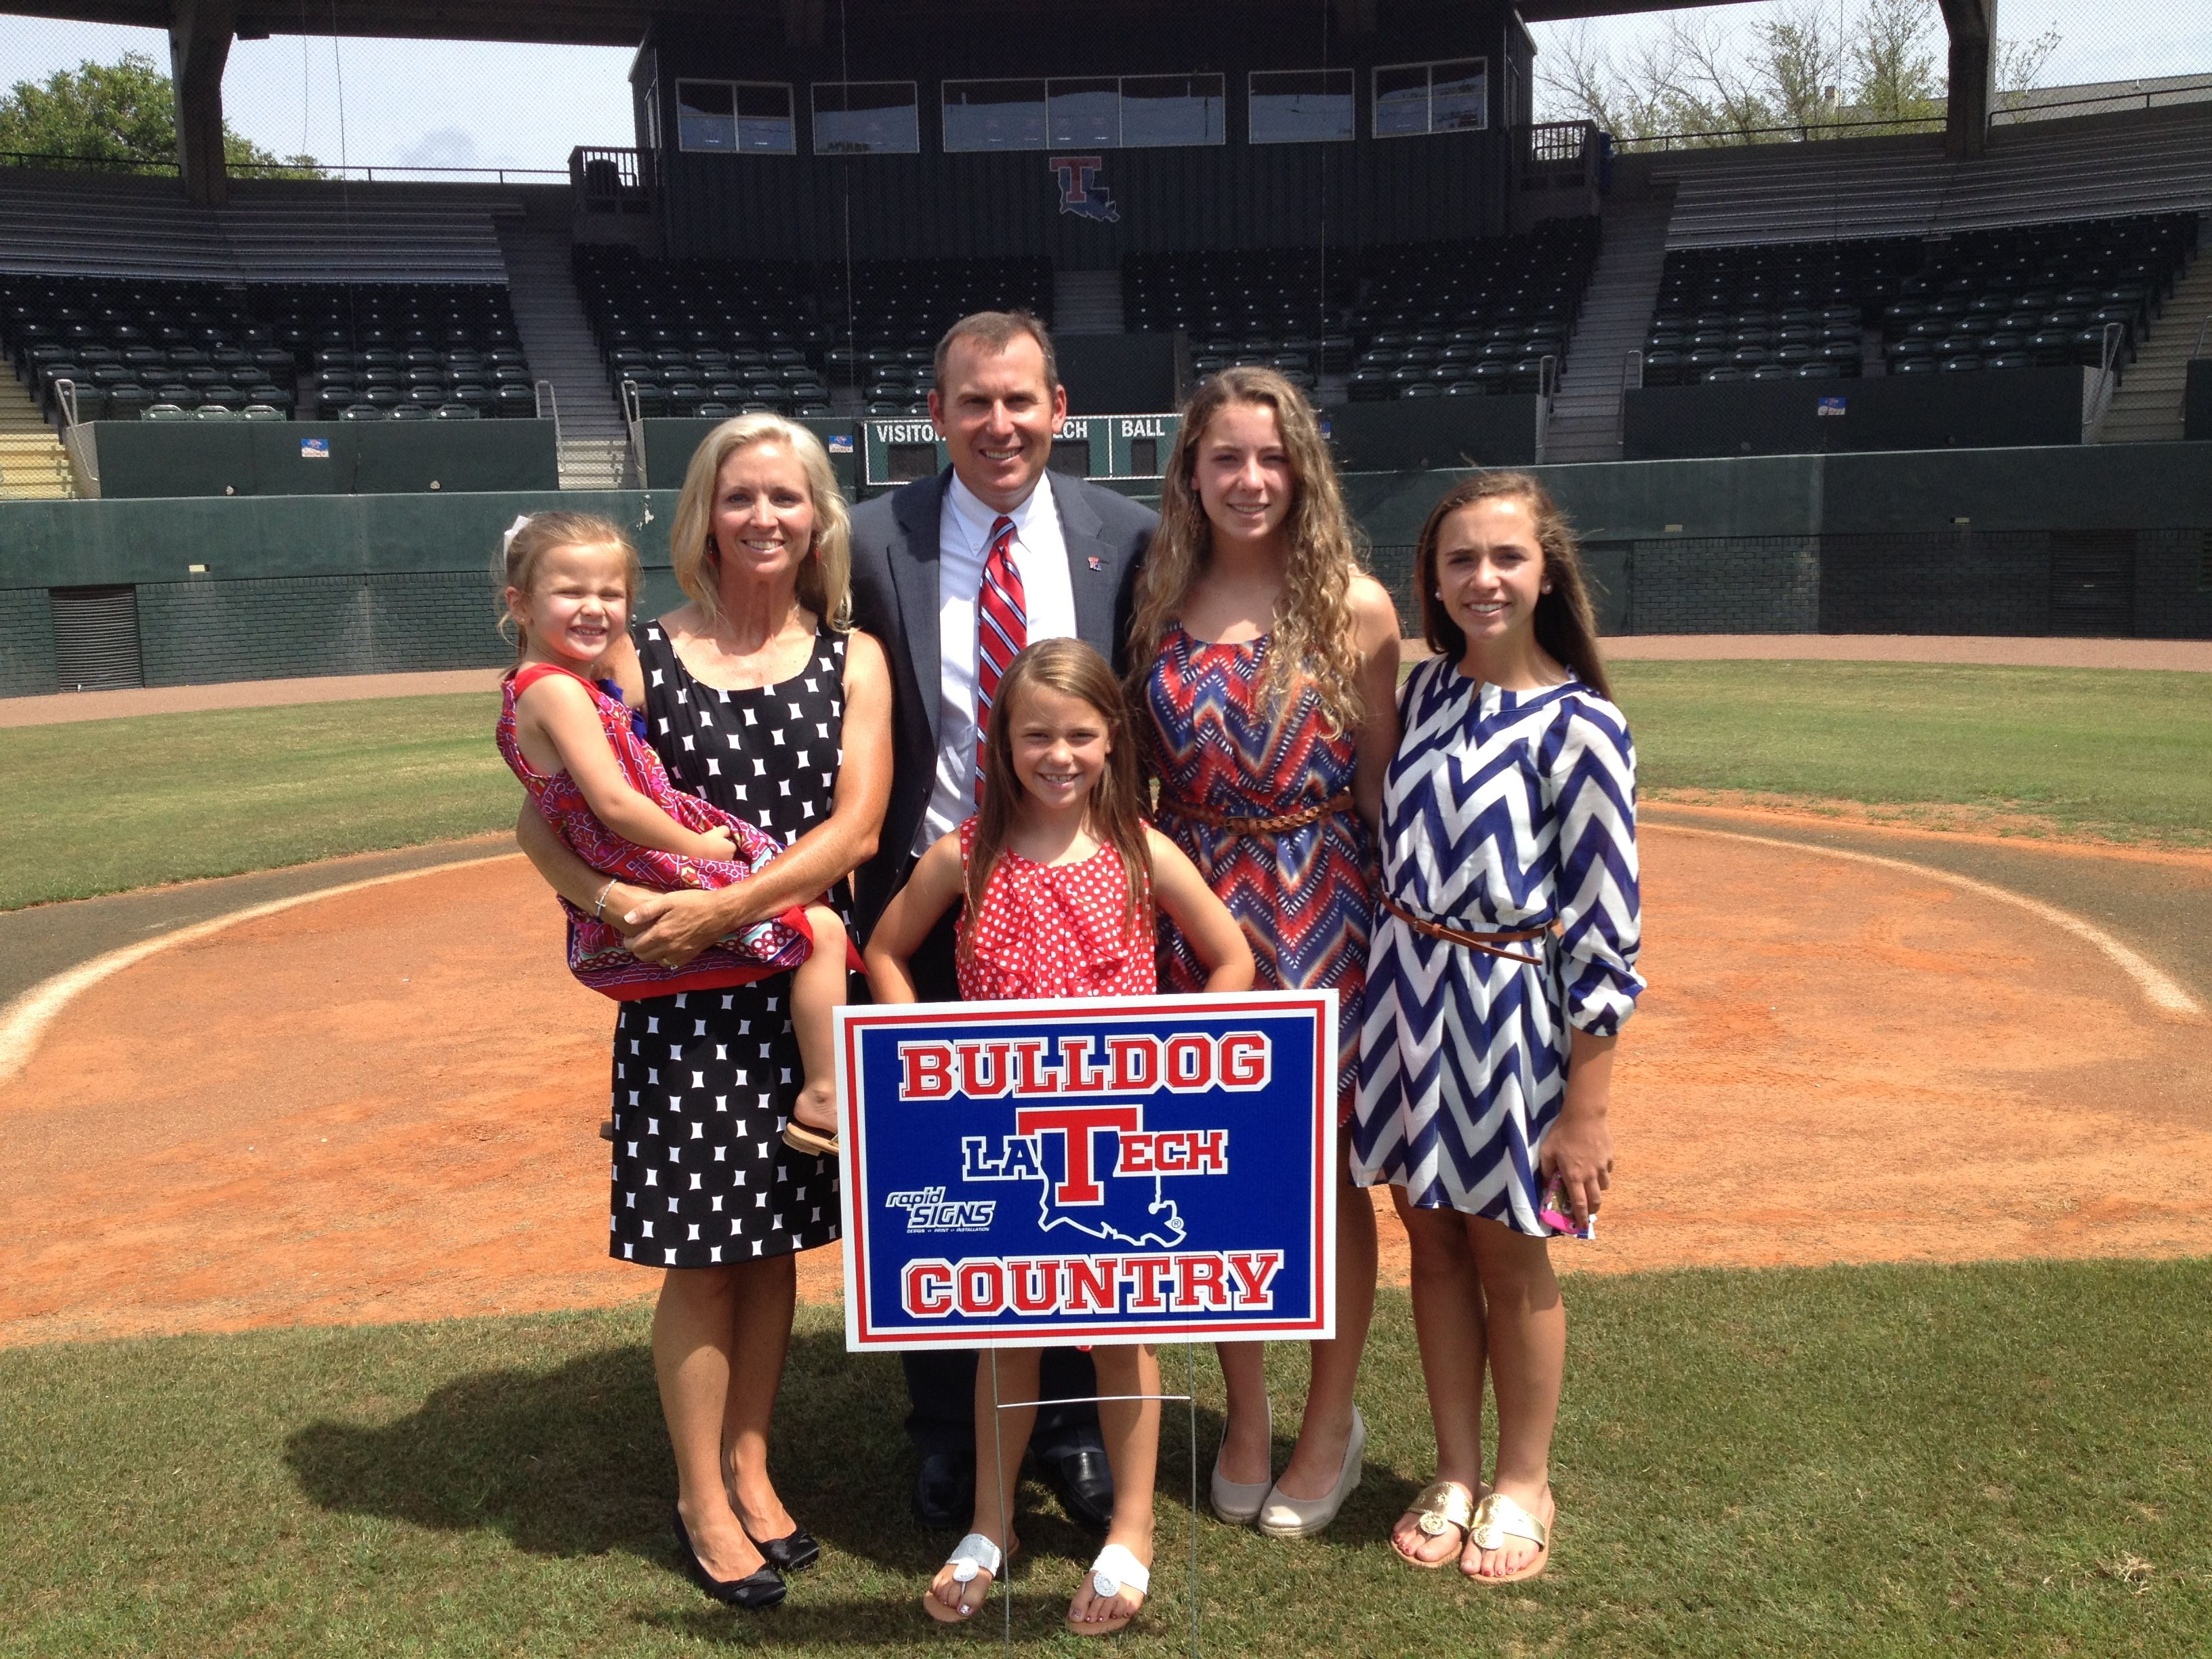 Welcome To Bulldog Country Coach Goff And Family Bulldog Coach Country